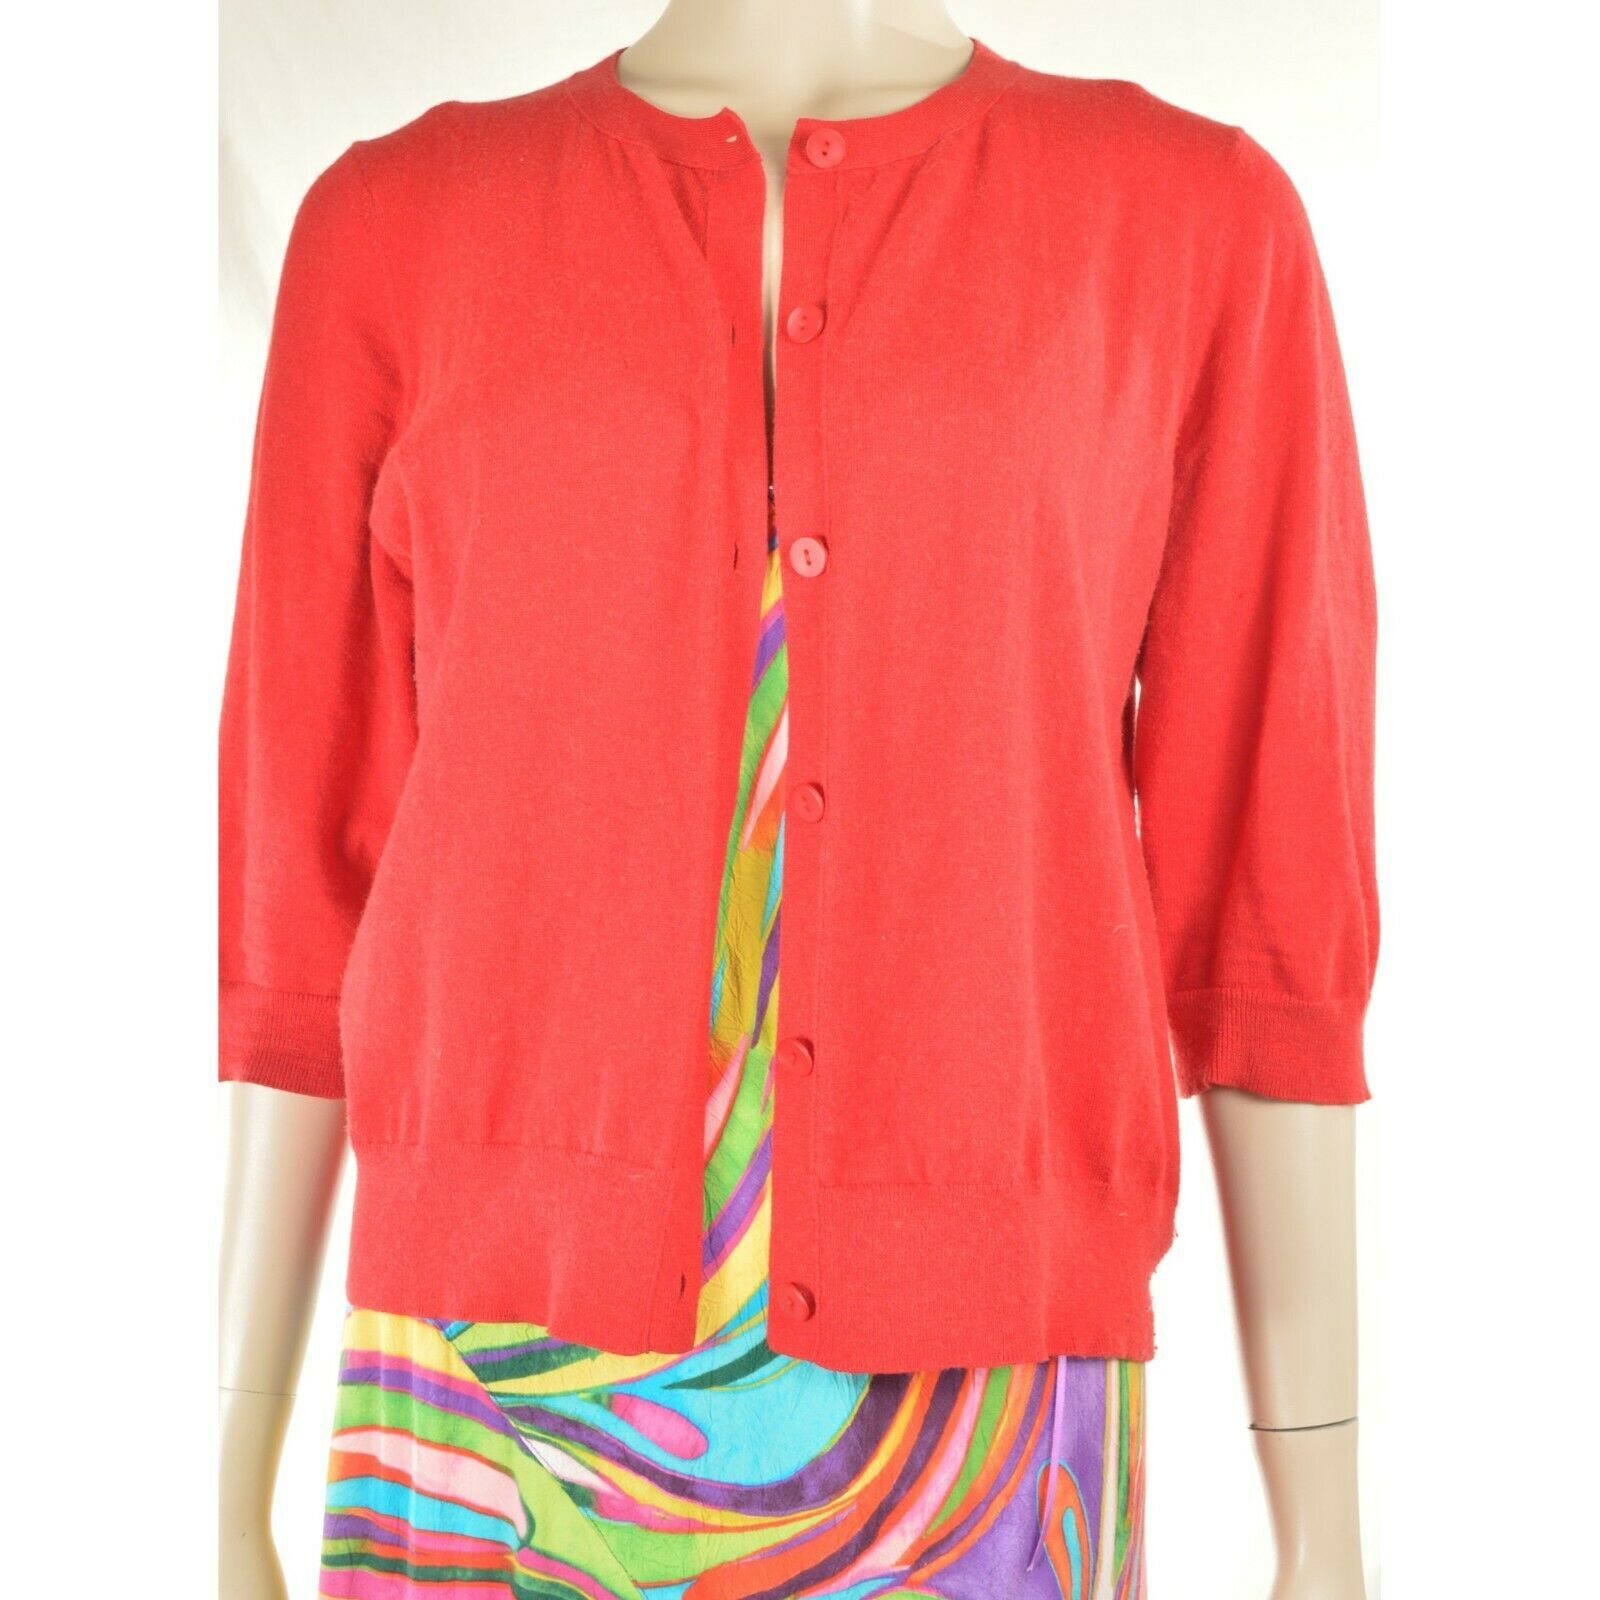 Eileen Fisher sweater M red cardigan 3/4 sleeves organic cotton cashmere blend